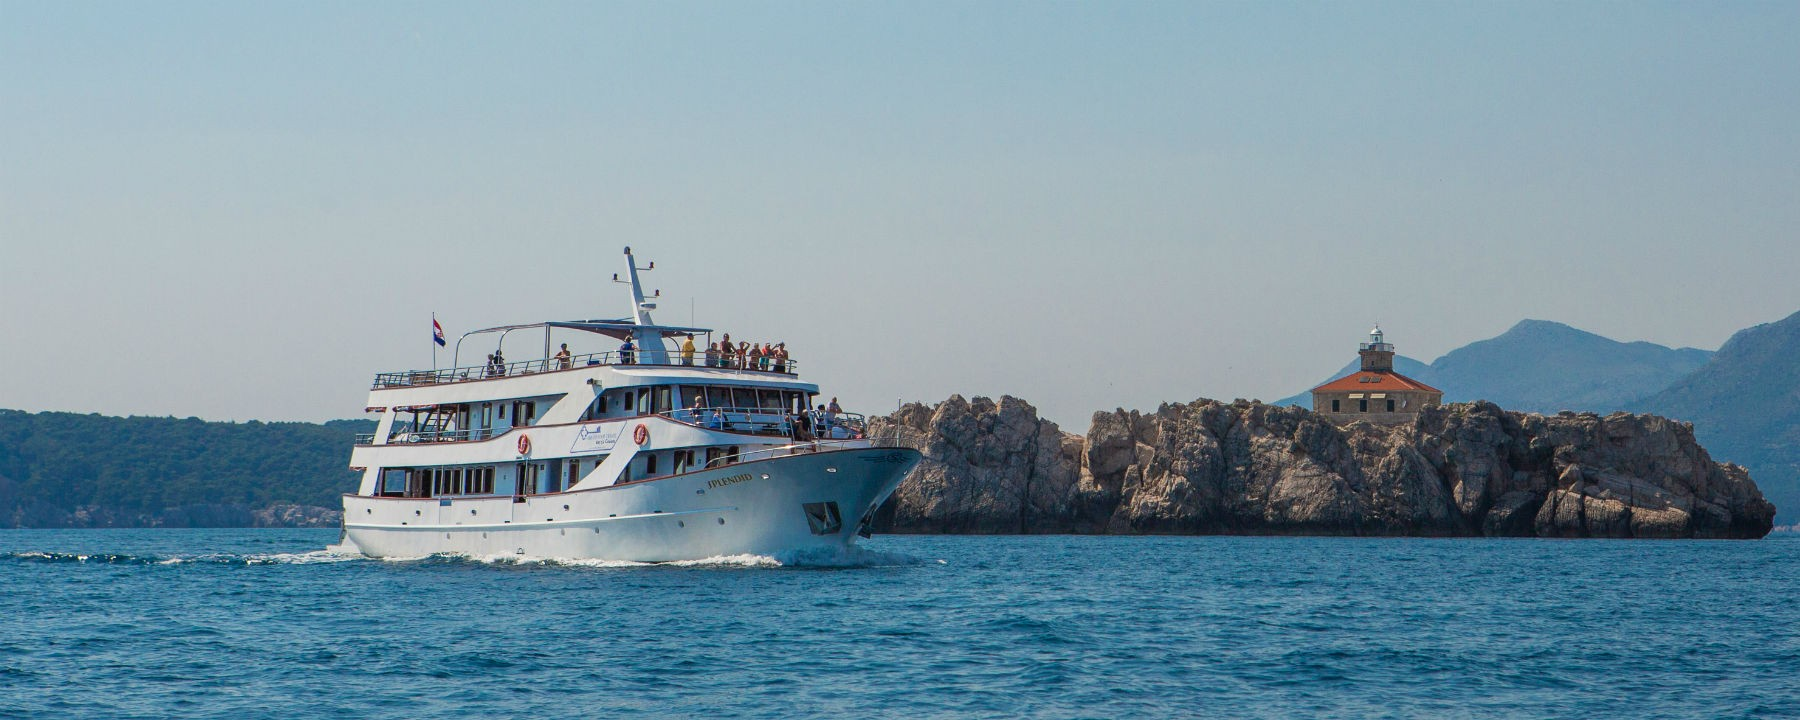 Splendid, the ship servicing Croatia Island Hopping Cruise from Dubrovnik